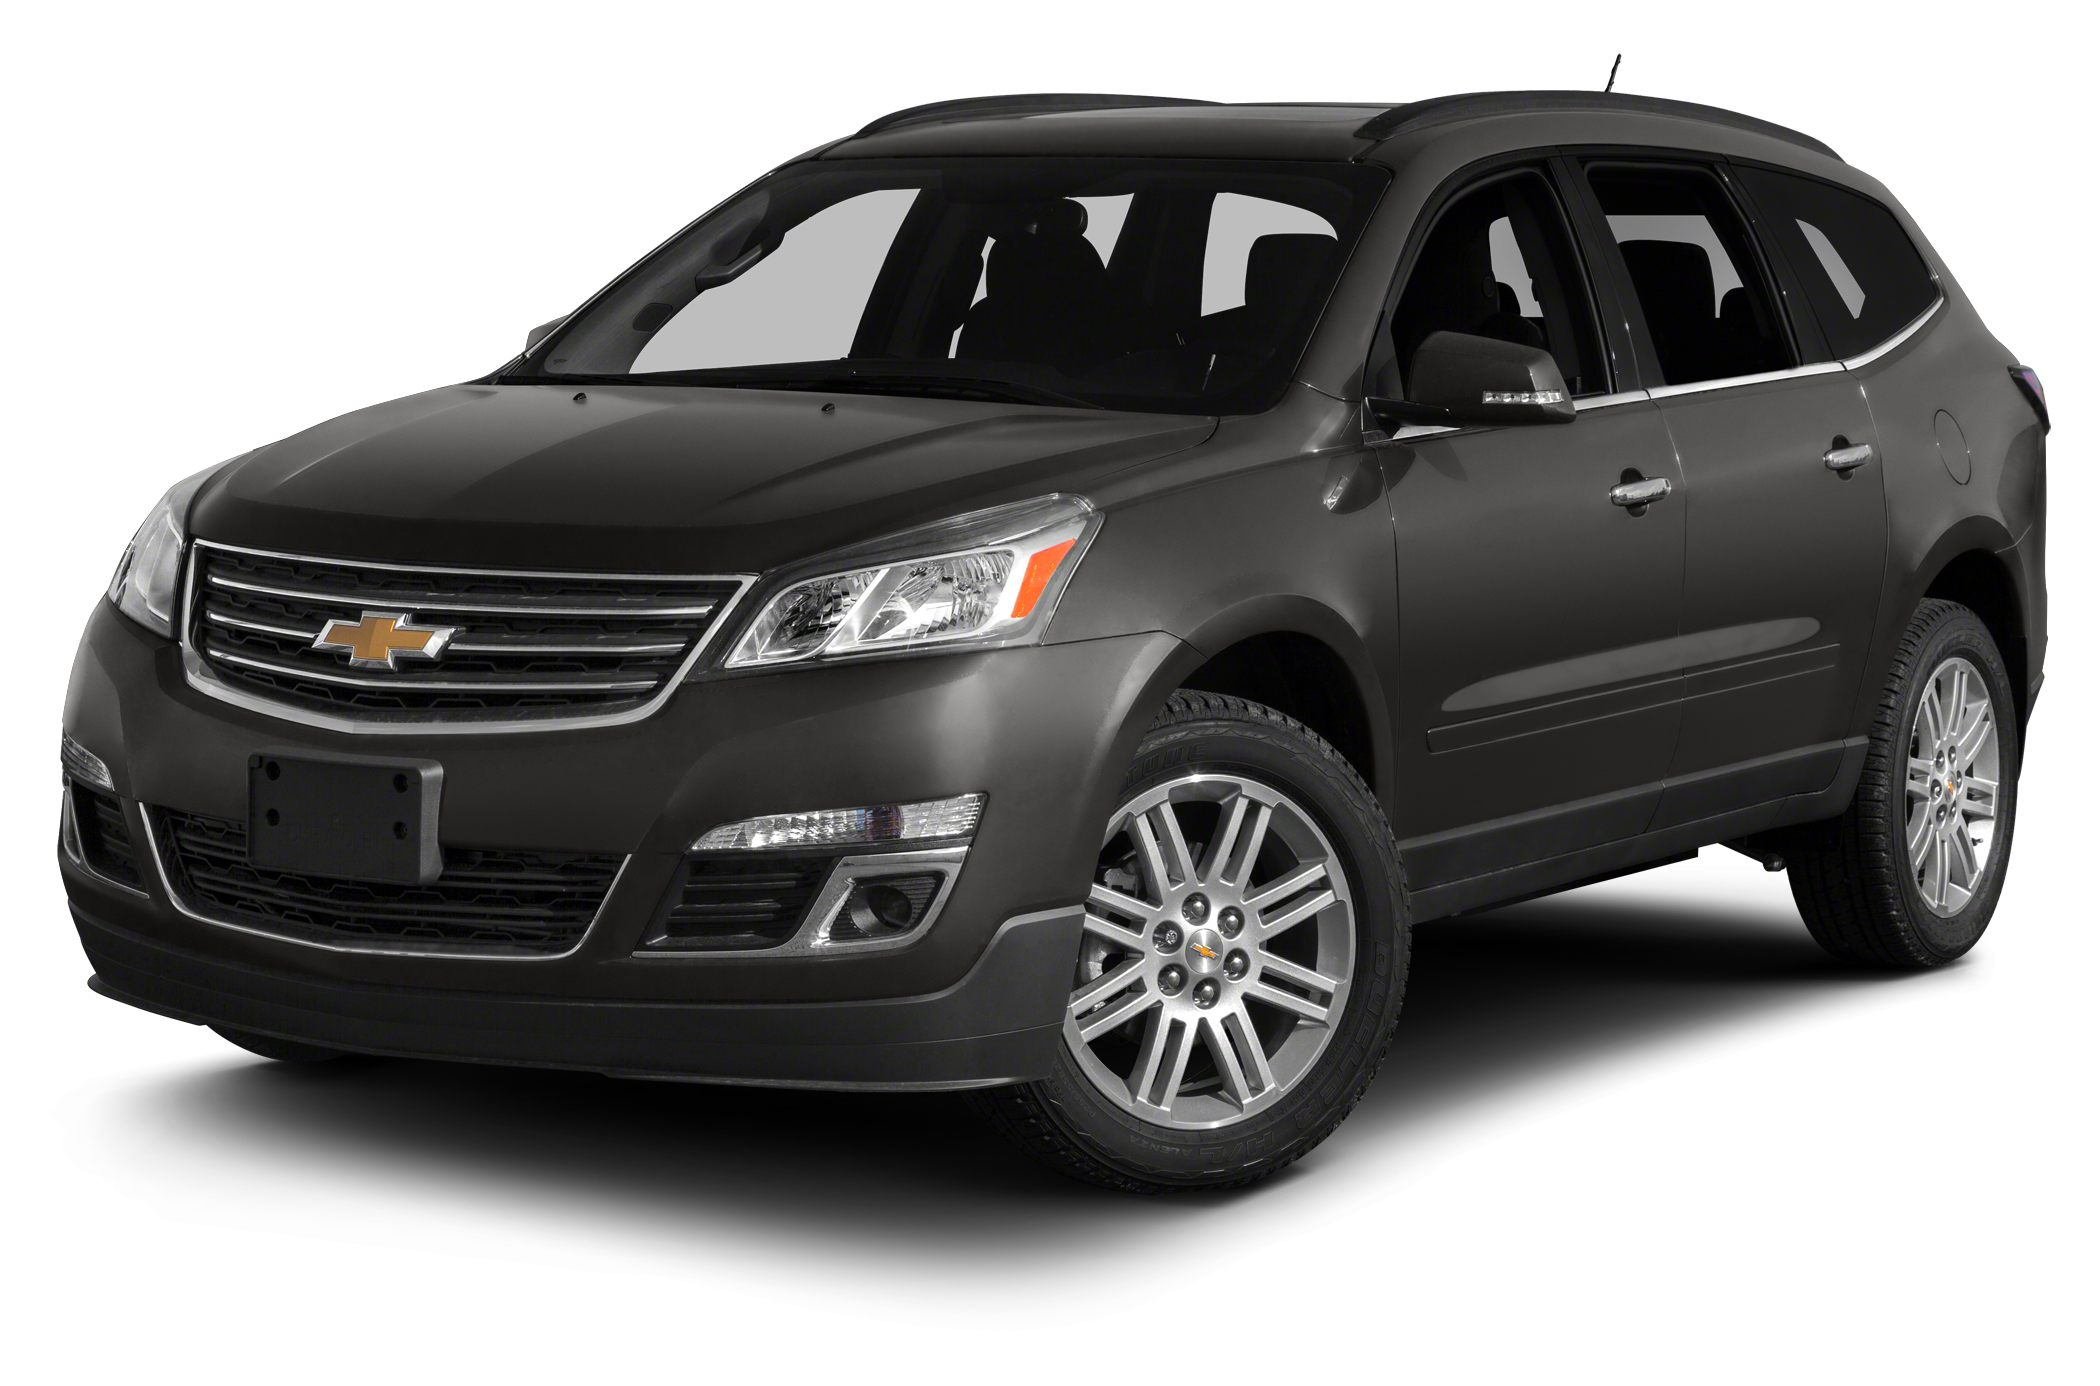 2014 Chevrolet Traverse 2LT SUV for sale in Salinas for $26,988 with 28,048 miles.